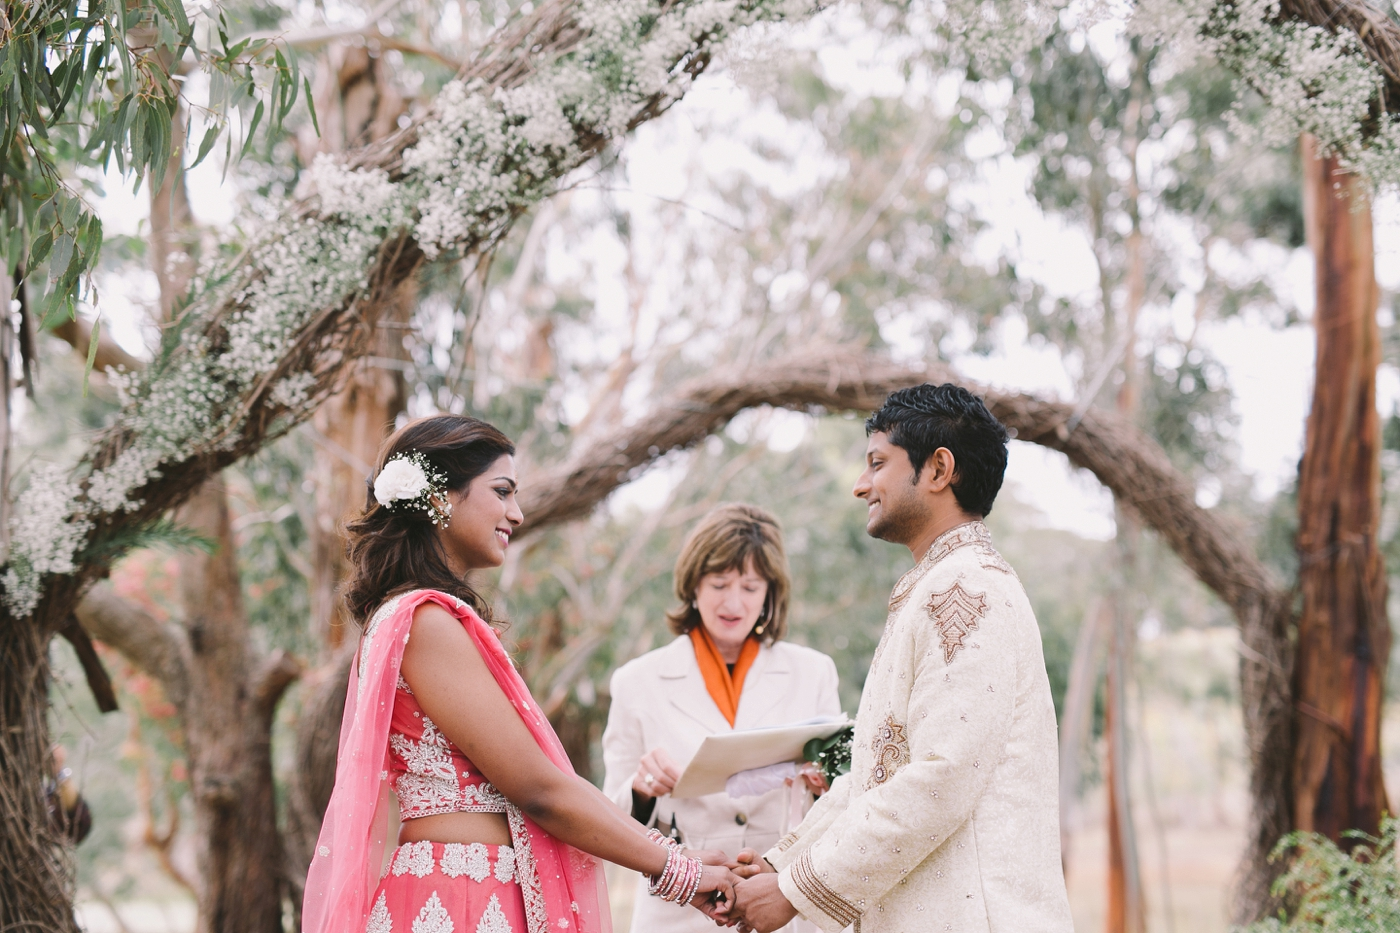 Thali and Ashwarth - Candid, Natural Wedding Photographer in Adelaide - www.katherineschultzphotography.com - Magpie Springs Wedding_0028.jpg